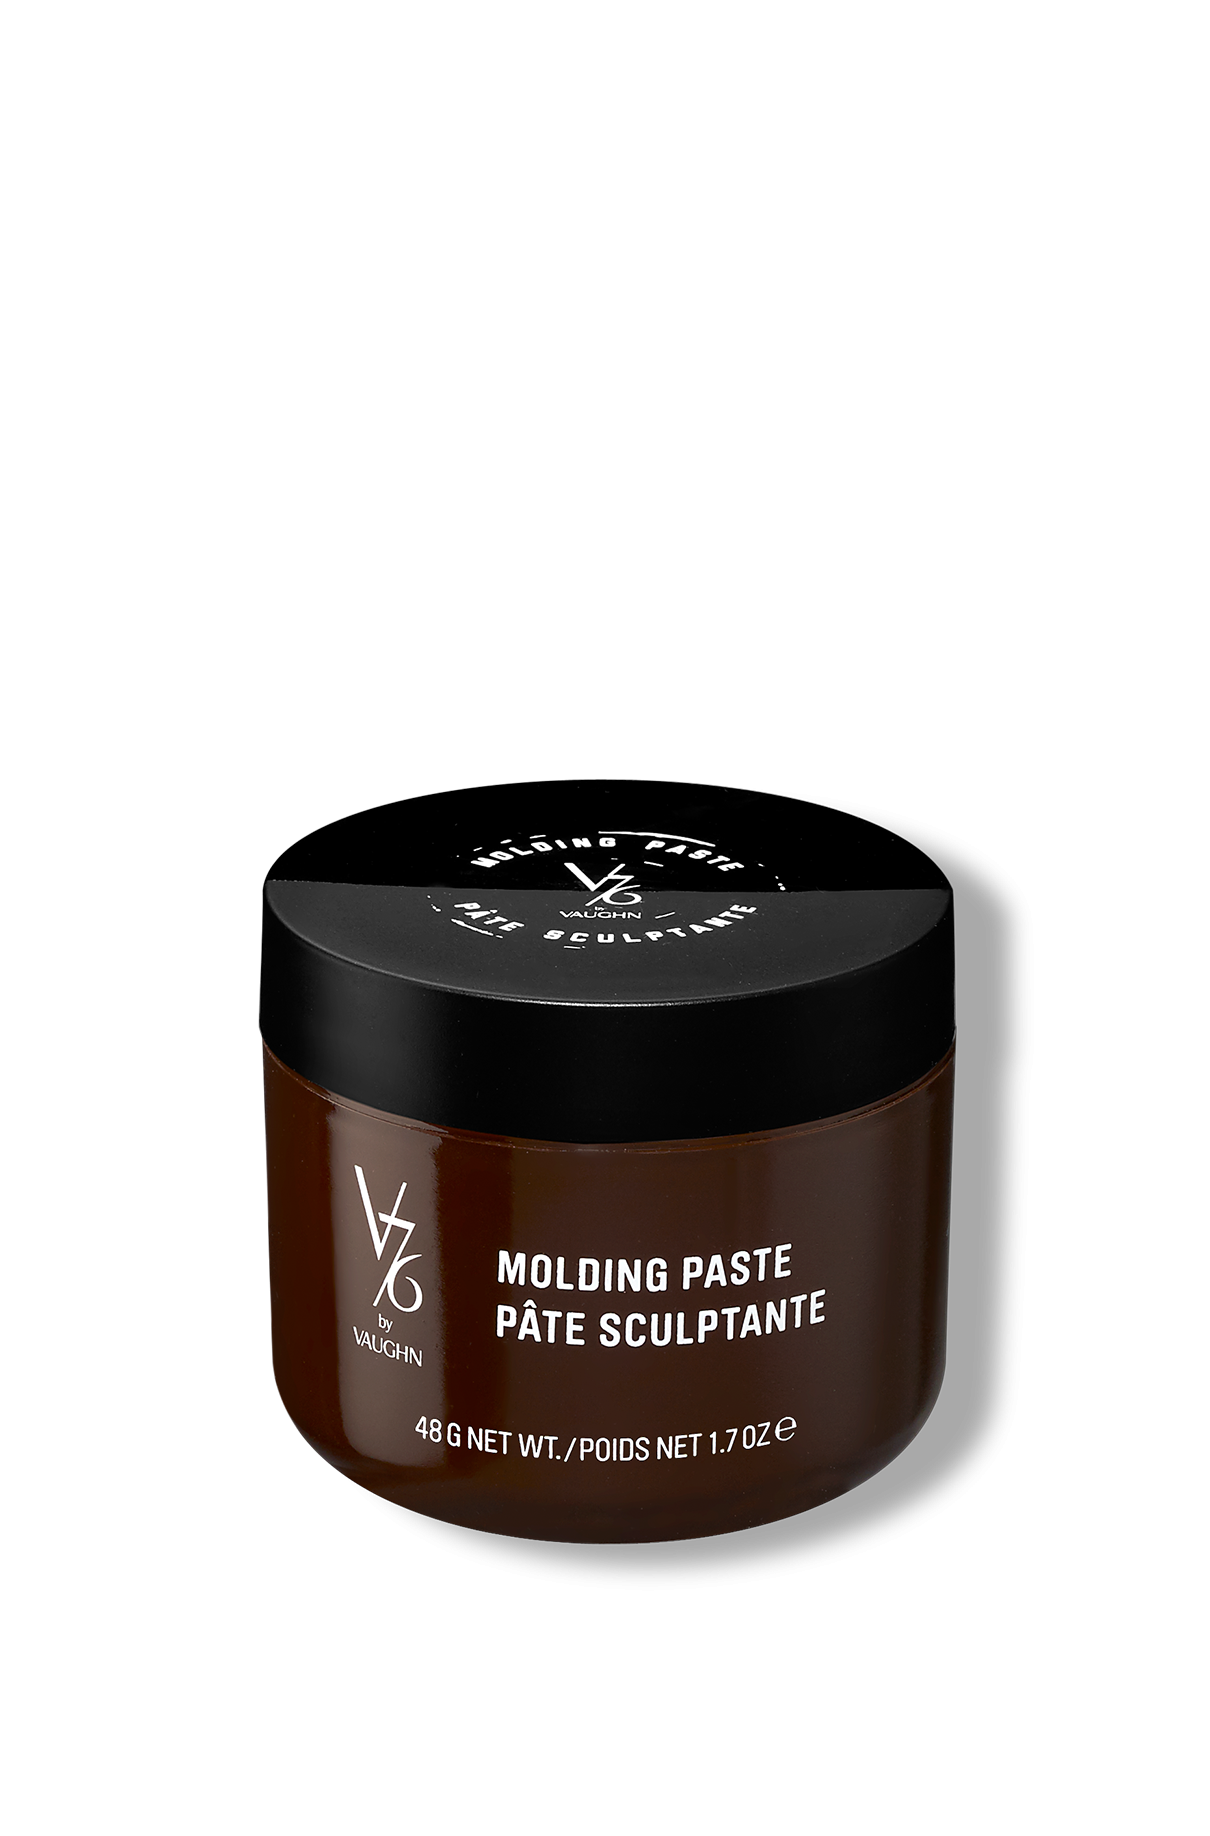 Molding Paste Natural moisturizer, Damp hair styles, Vaughn